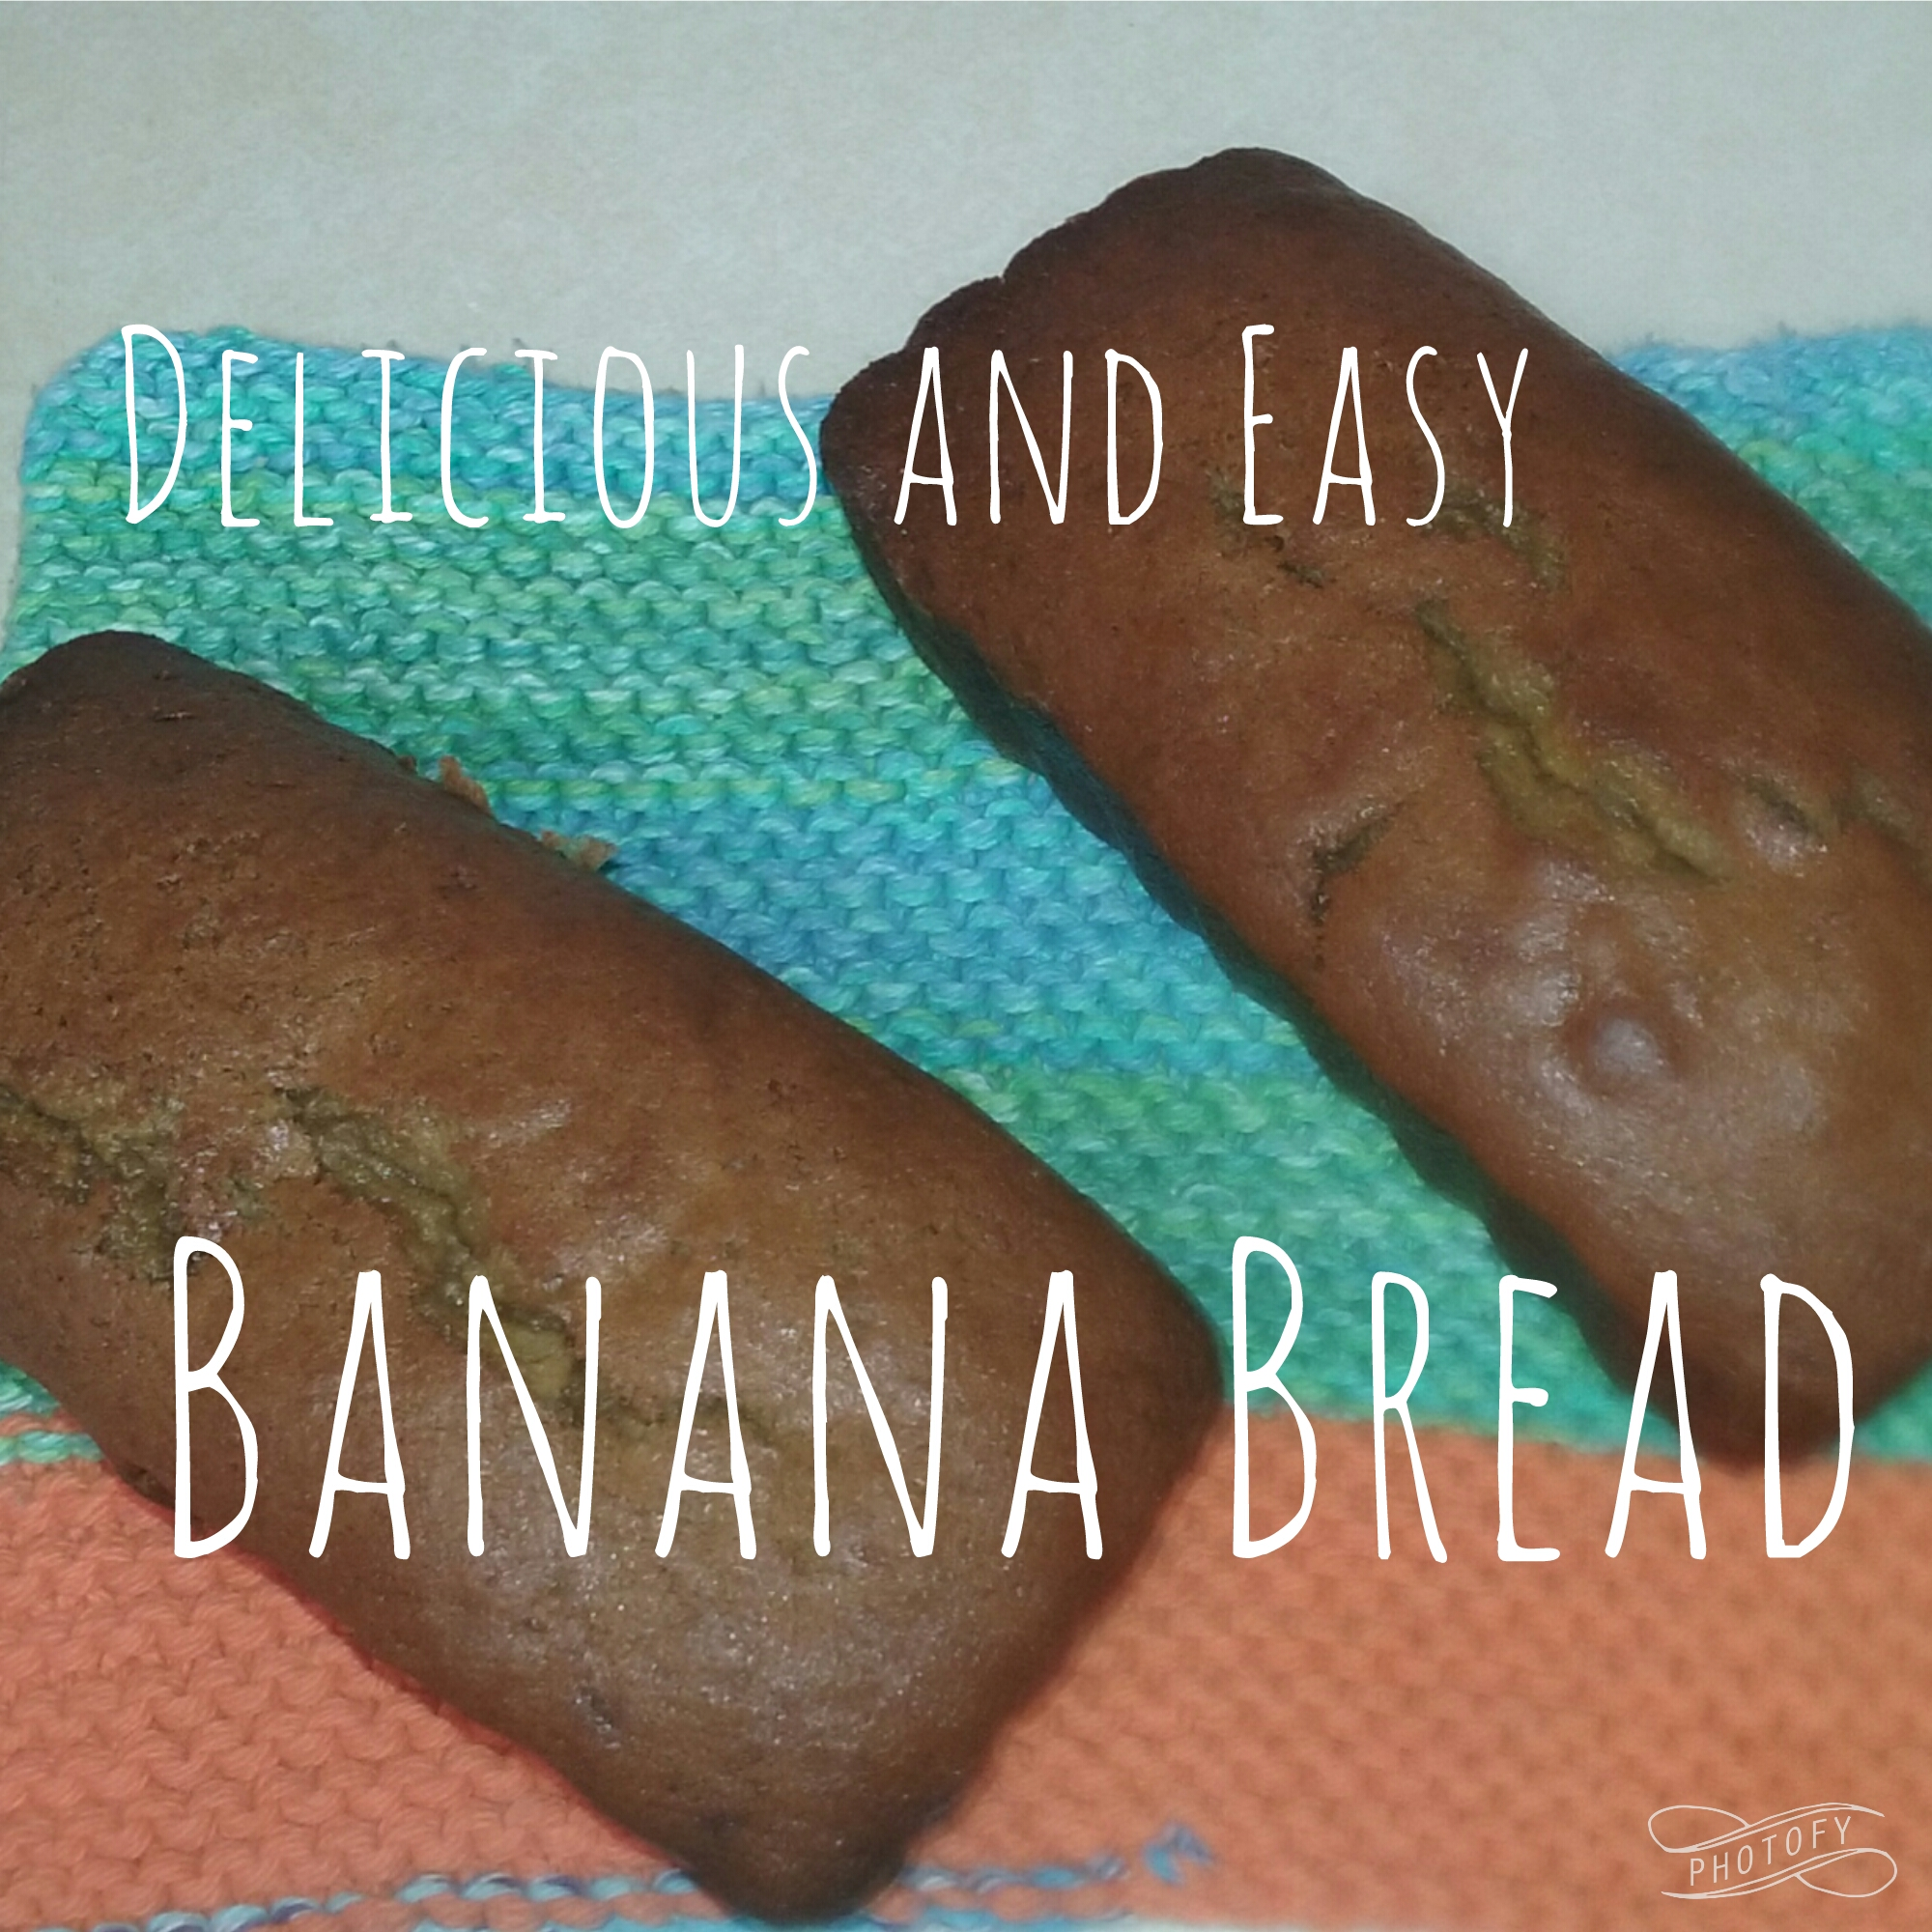 Delicious and Easy Banana Bread